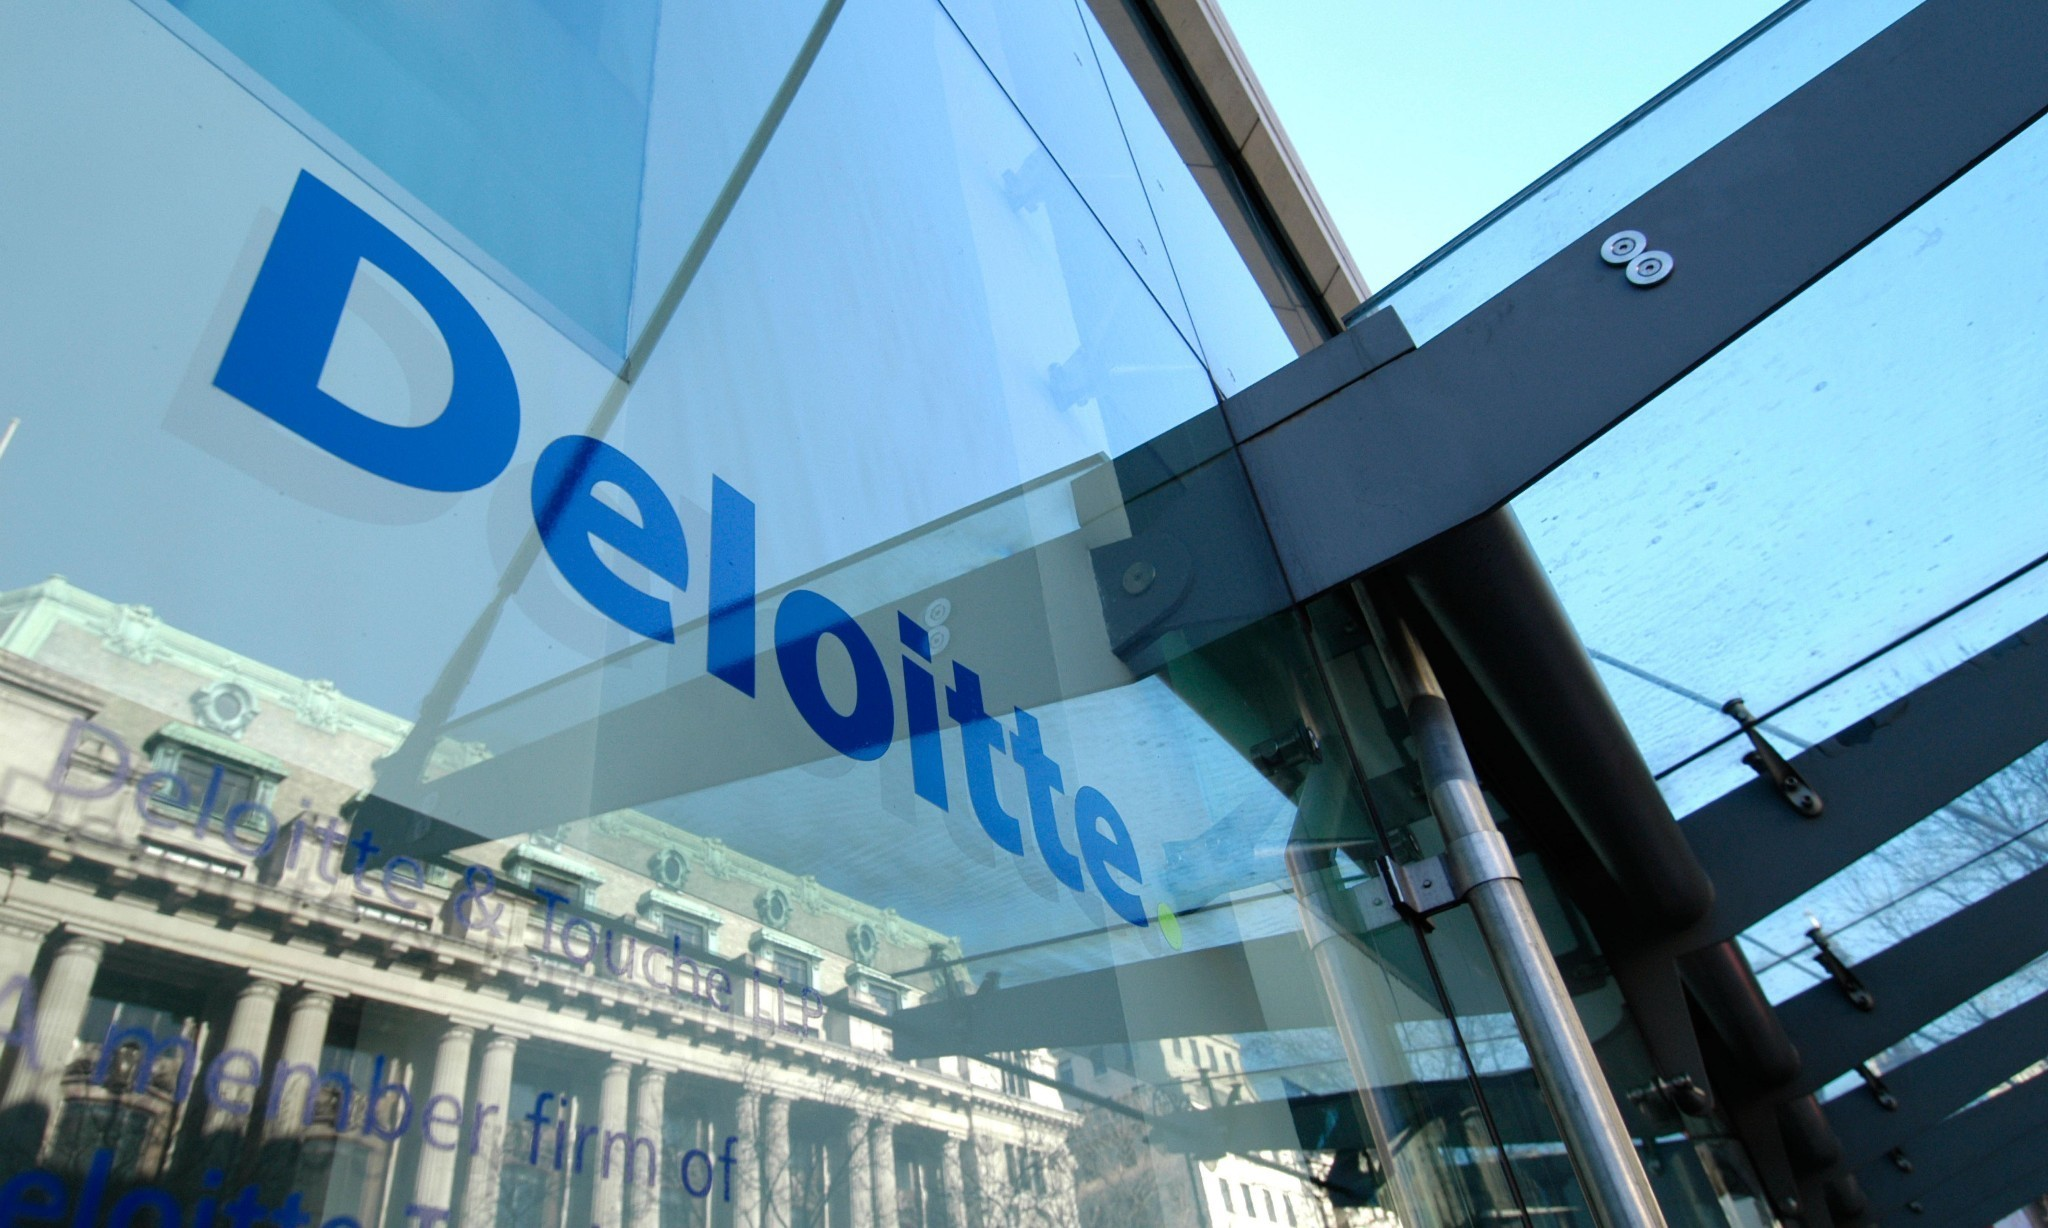 Deloitte hit by cyber-attack revealing clients' secret emails